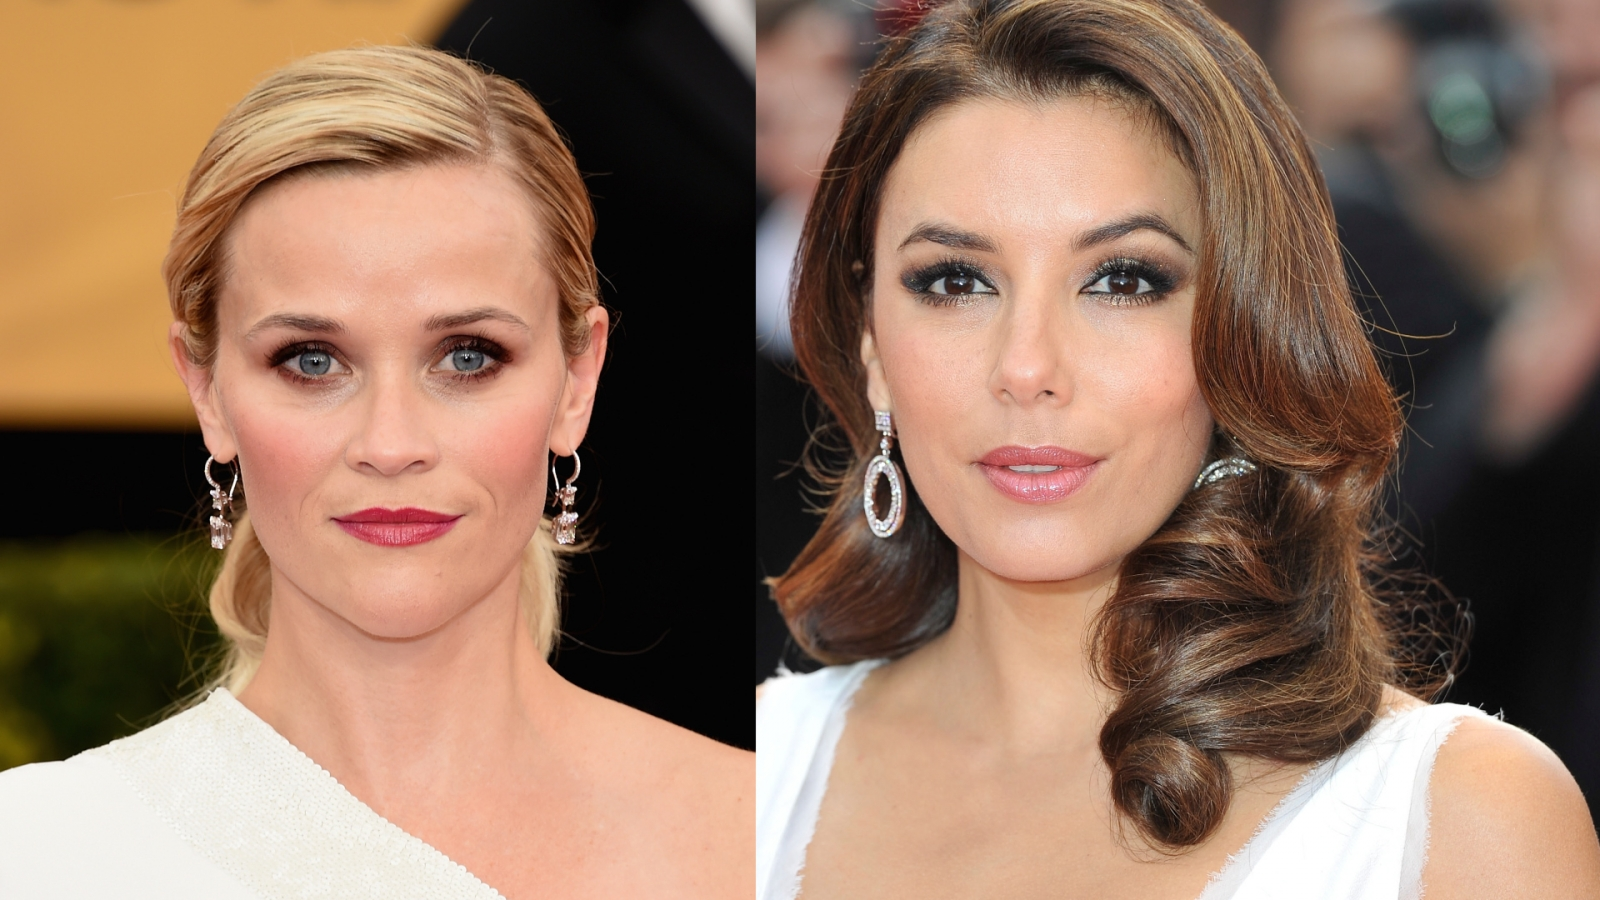 Time's Up: Women In Hollywood Band Together To Fight Sexual Harassment